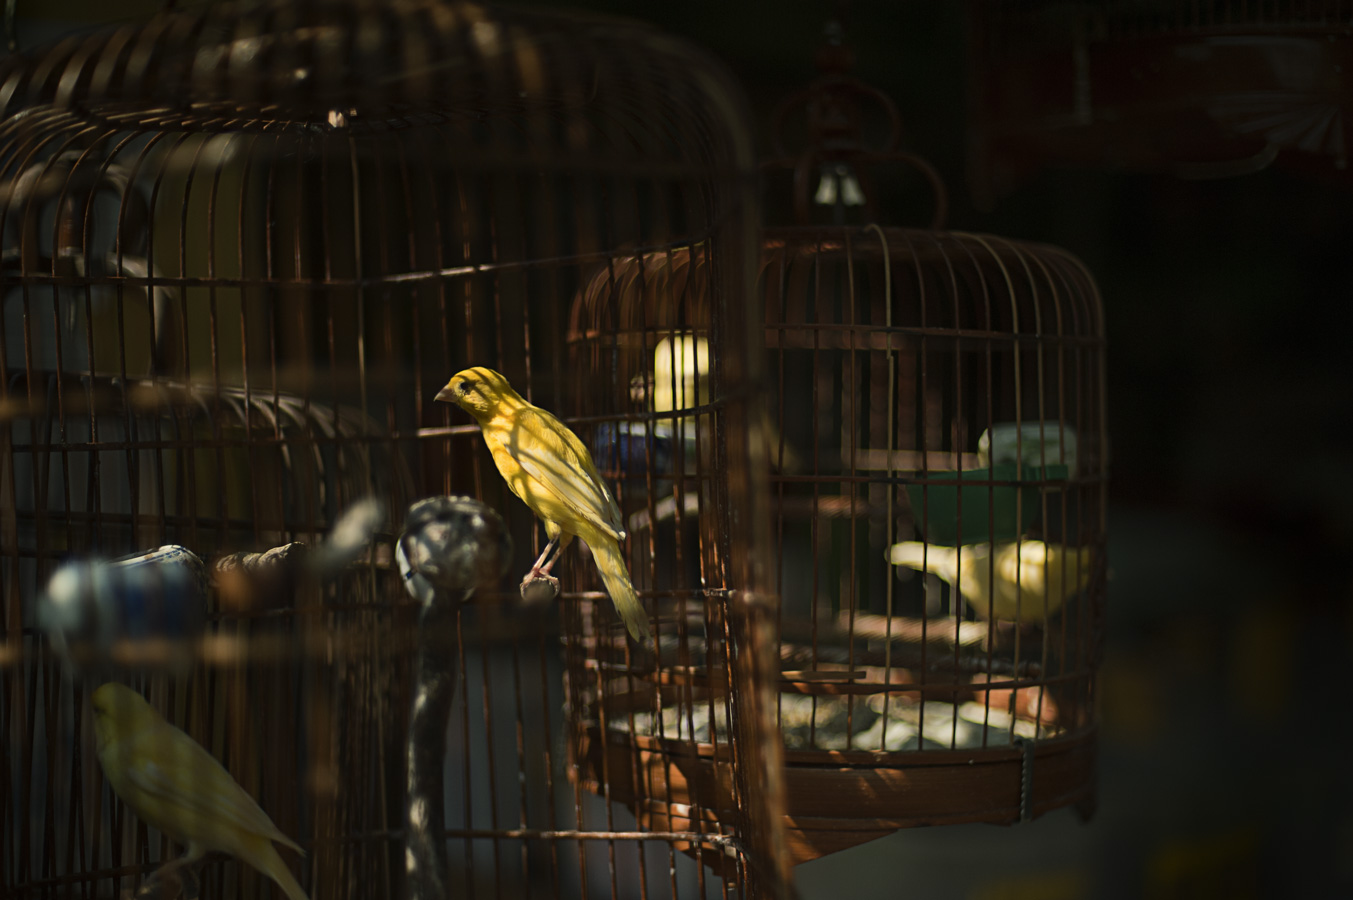 Songbirds in traditional Chinese birdcages at Huadiwan Market, Guangzhou